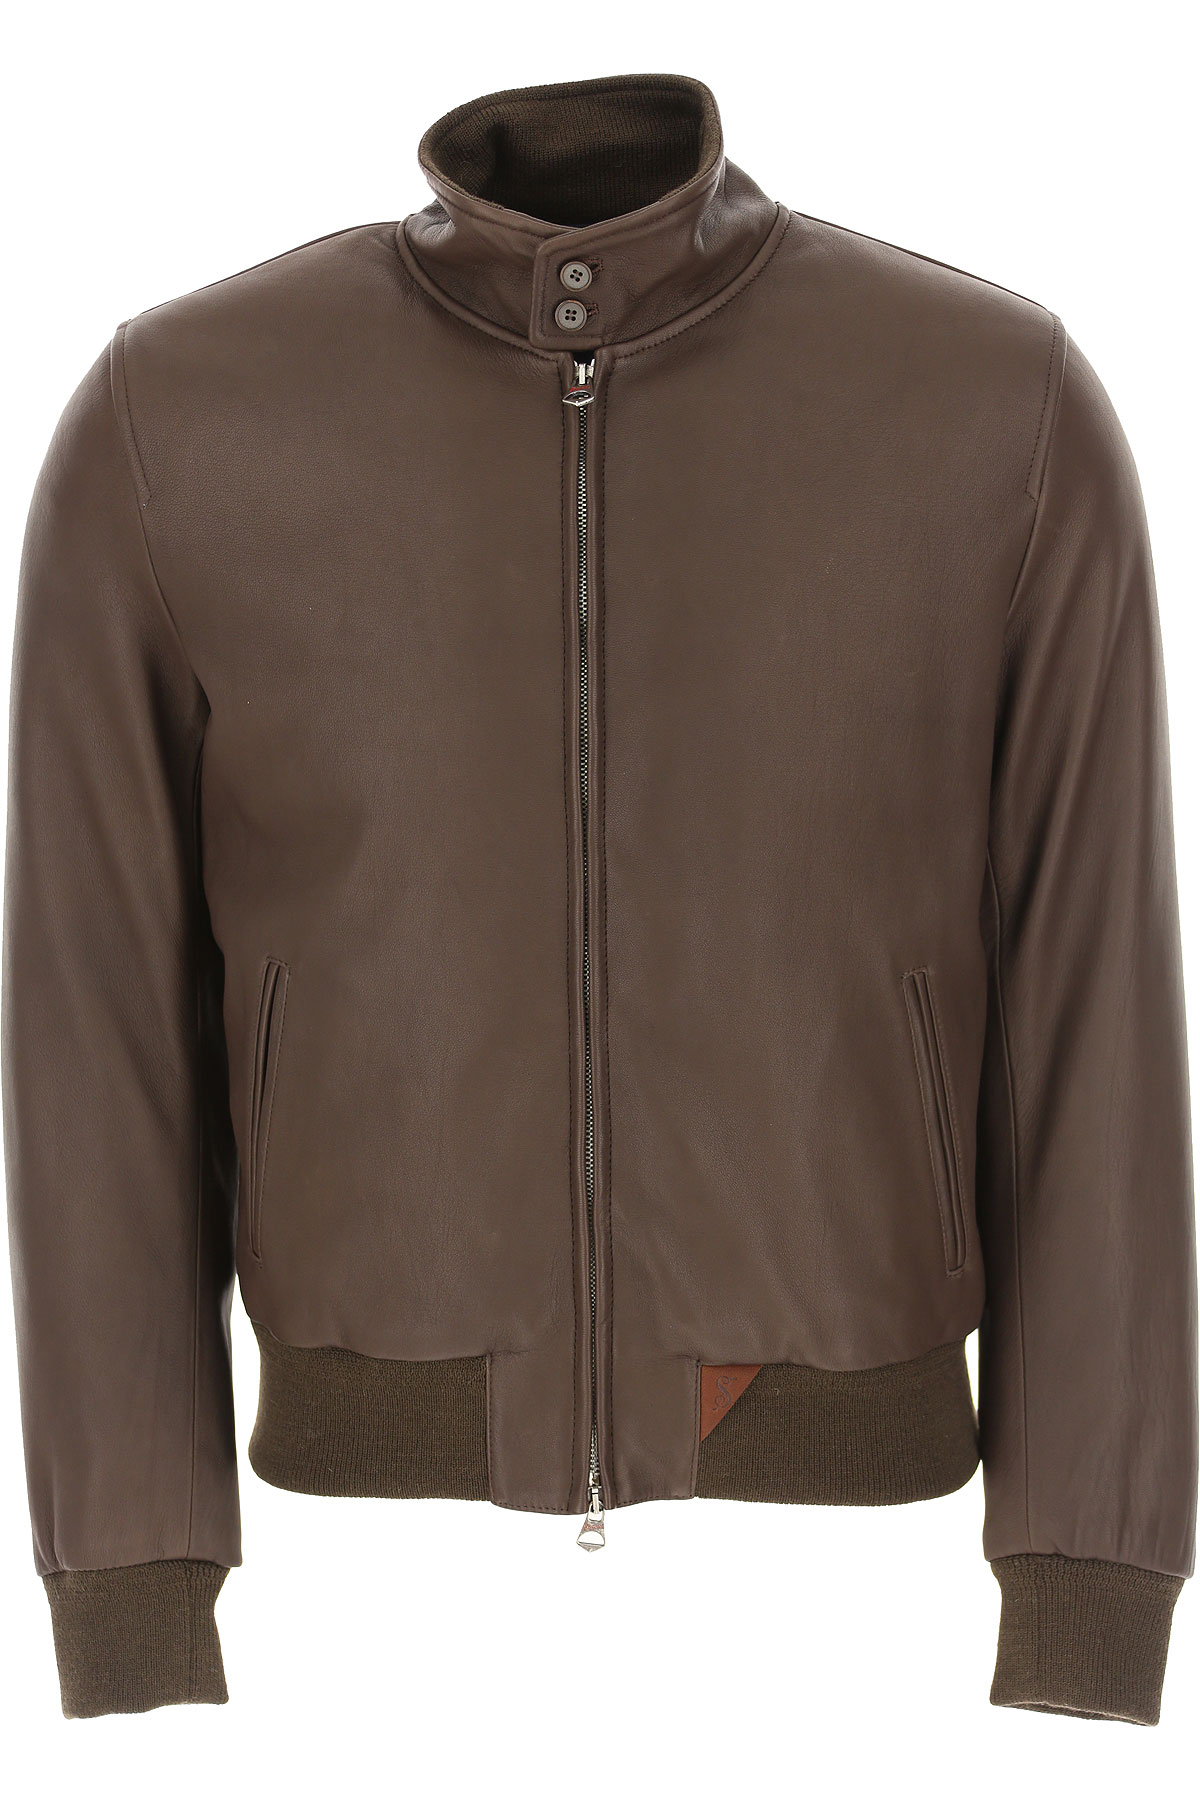 Stewart Leather Jacket for Men On Sale, Brown, Leather, 2019, L S XL XXL